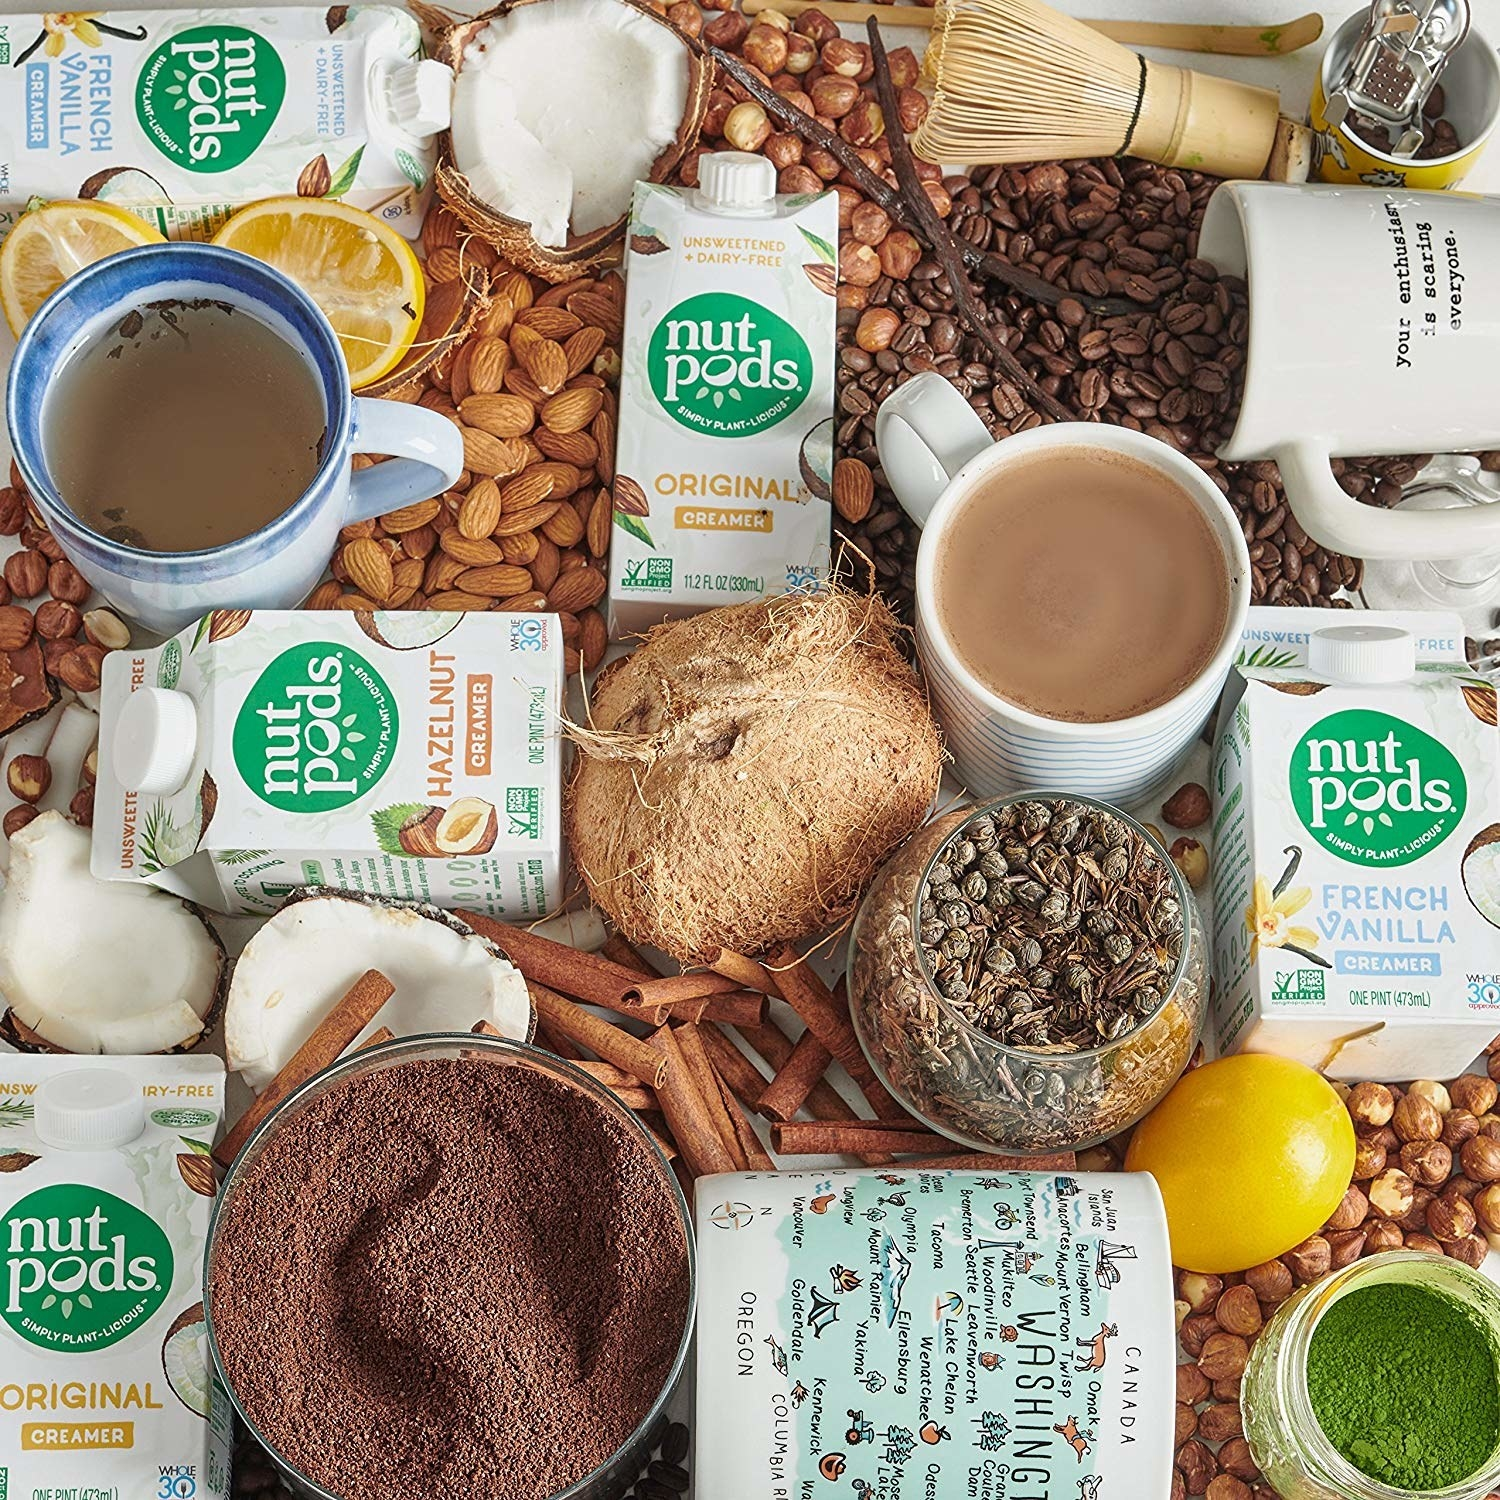 nutpods creamer containers in a flatlay with coconuts, cinnamon, lemons, and various nuts,